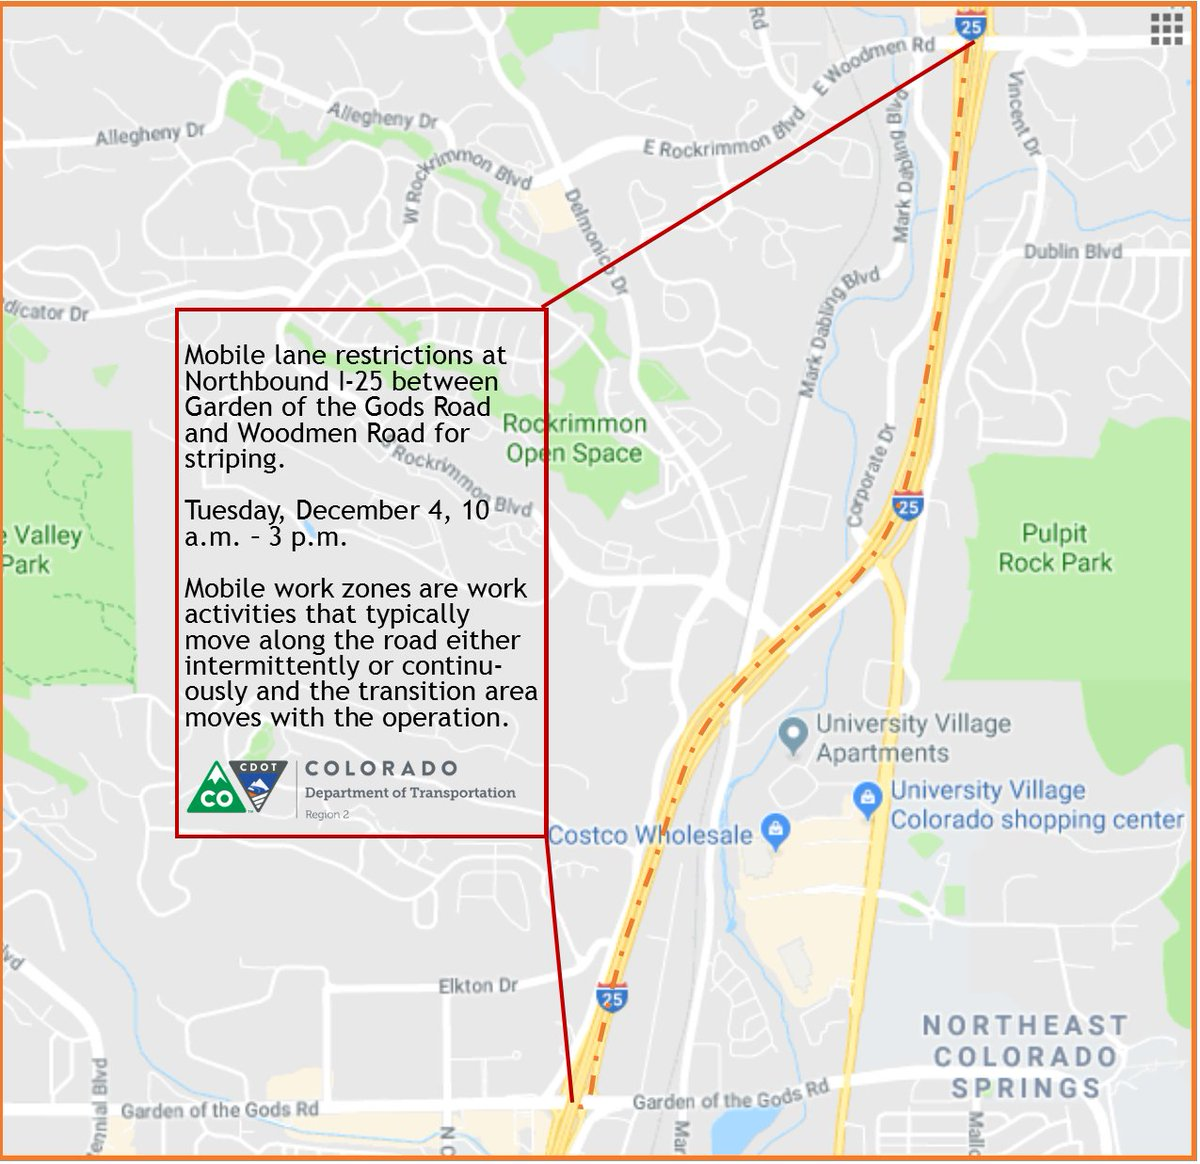 TRAFFIC ALERT - NB I-25 in Colorado Springs from 10am to 3pm today, drivers will experience mobile lane restrictions between Garden of the Gods and Woodmen Road. Crews will be working on pavement markings in the area. Expect delays in the area.